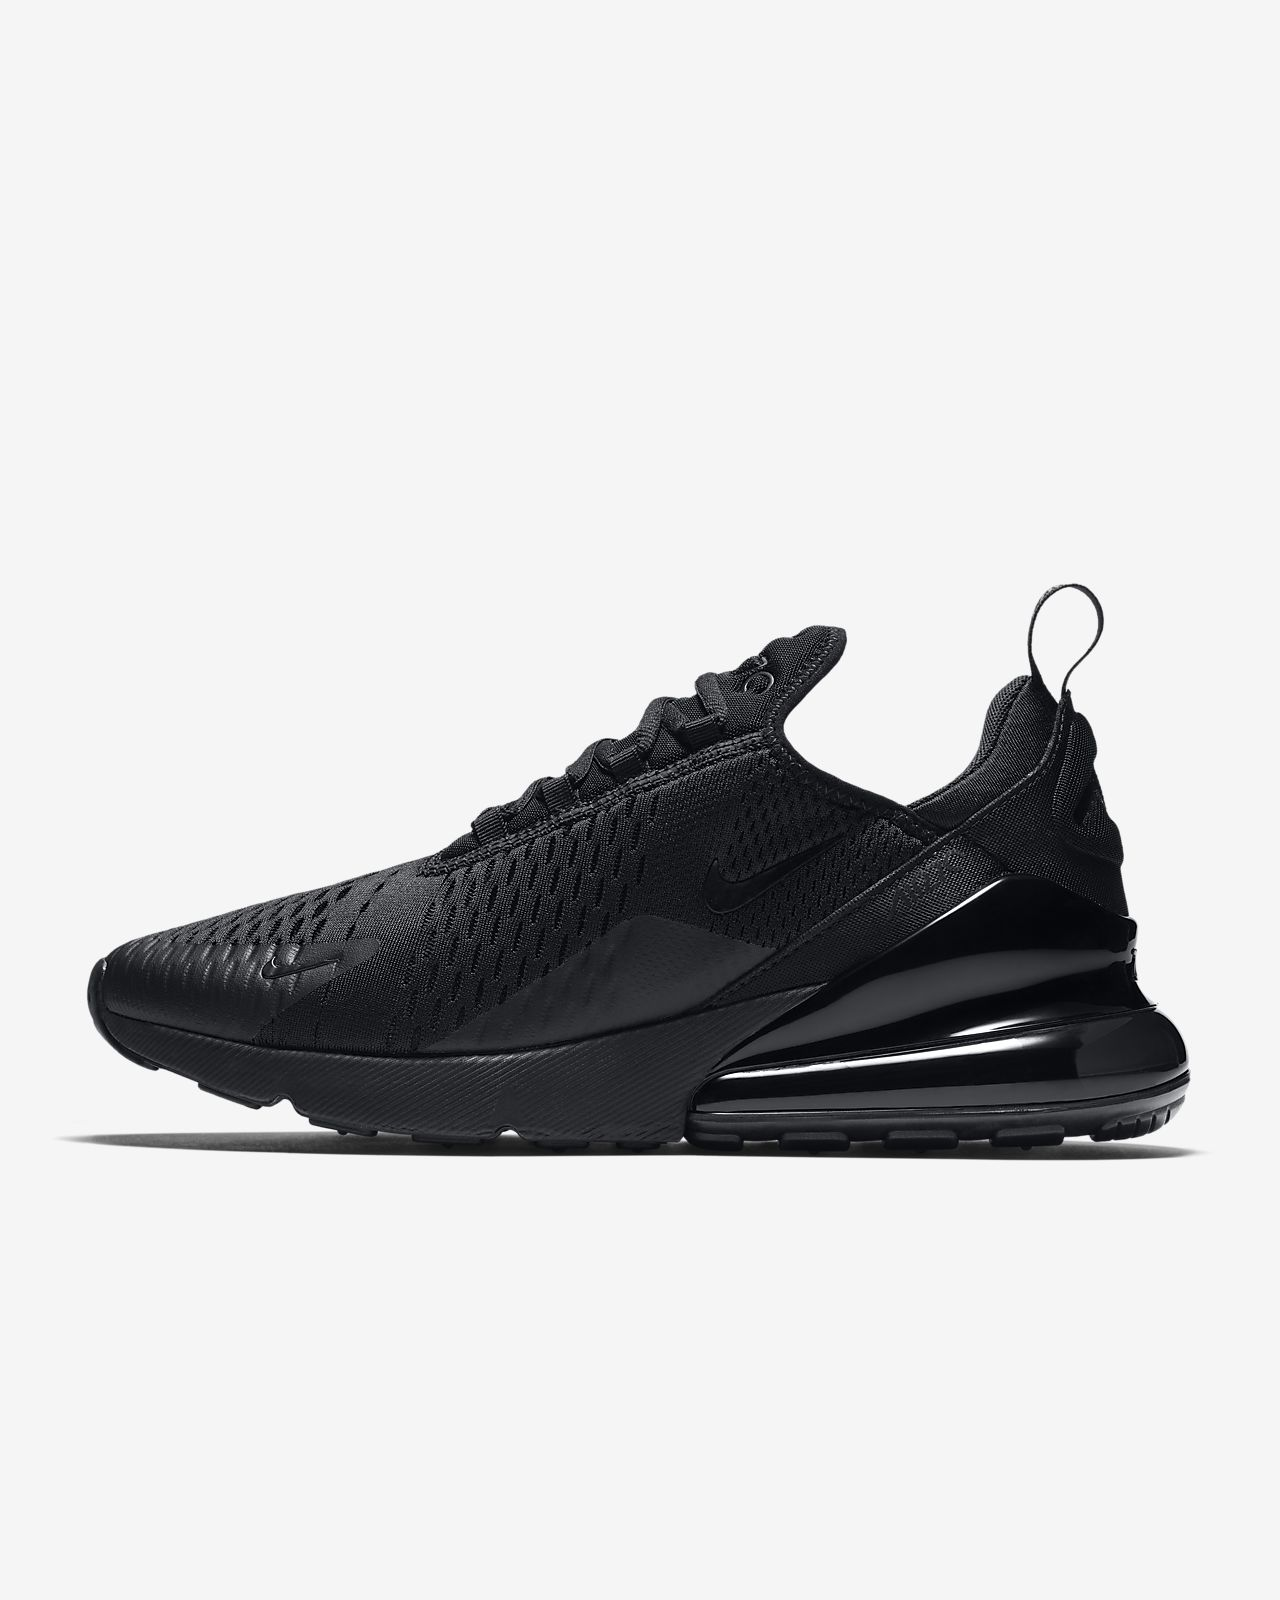 meet 4975d e91b5 Men s Shoe. Nike Air Max 270